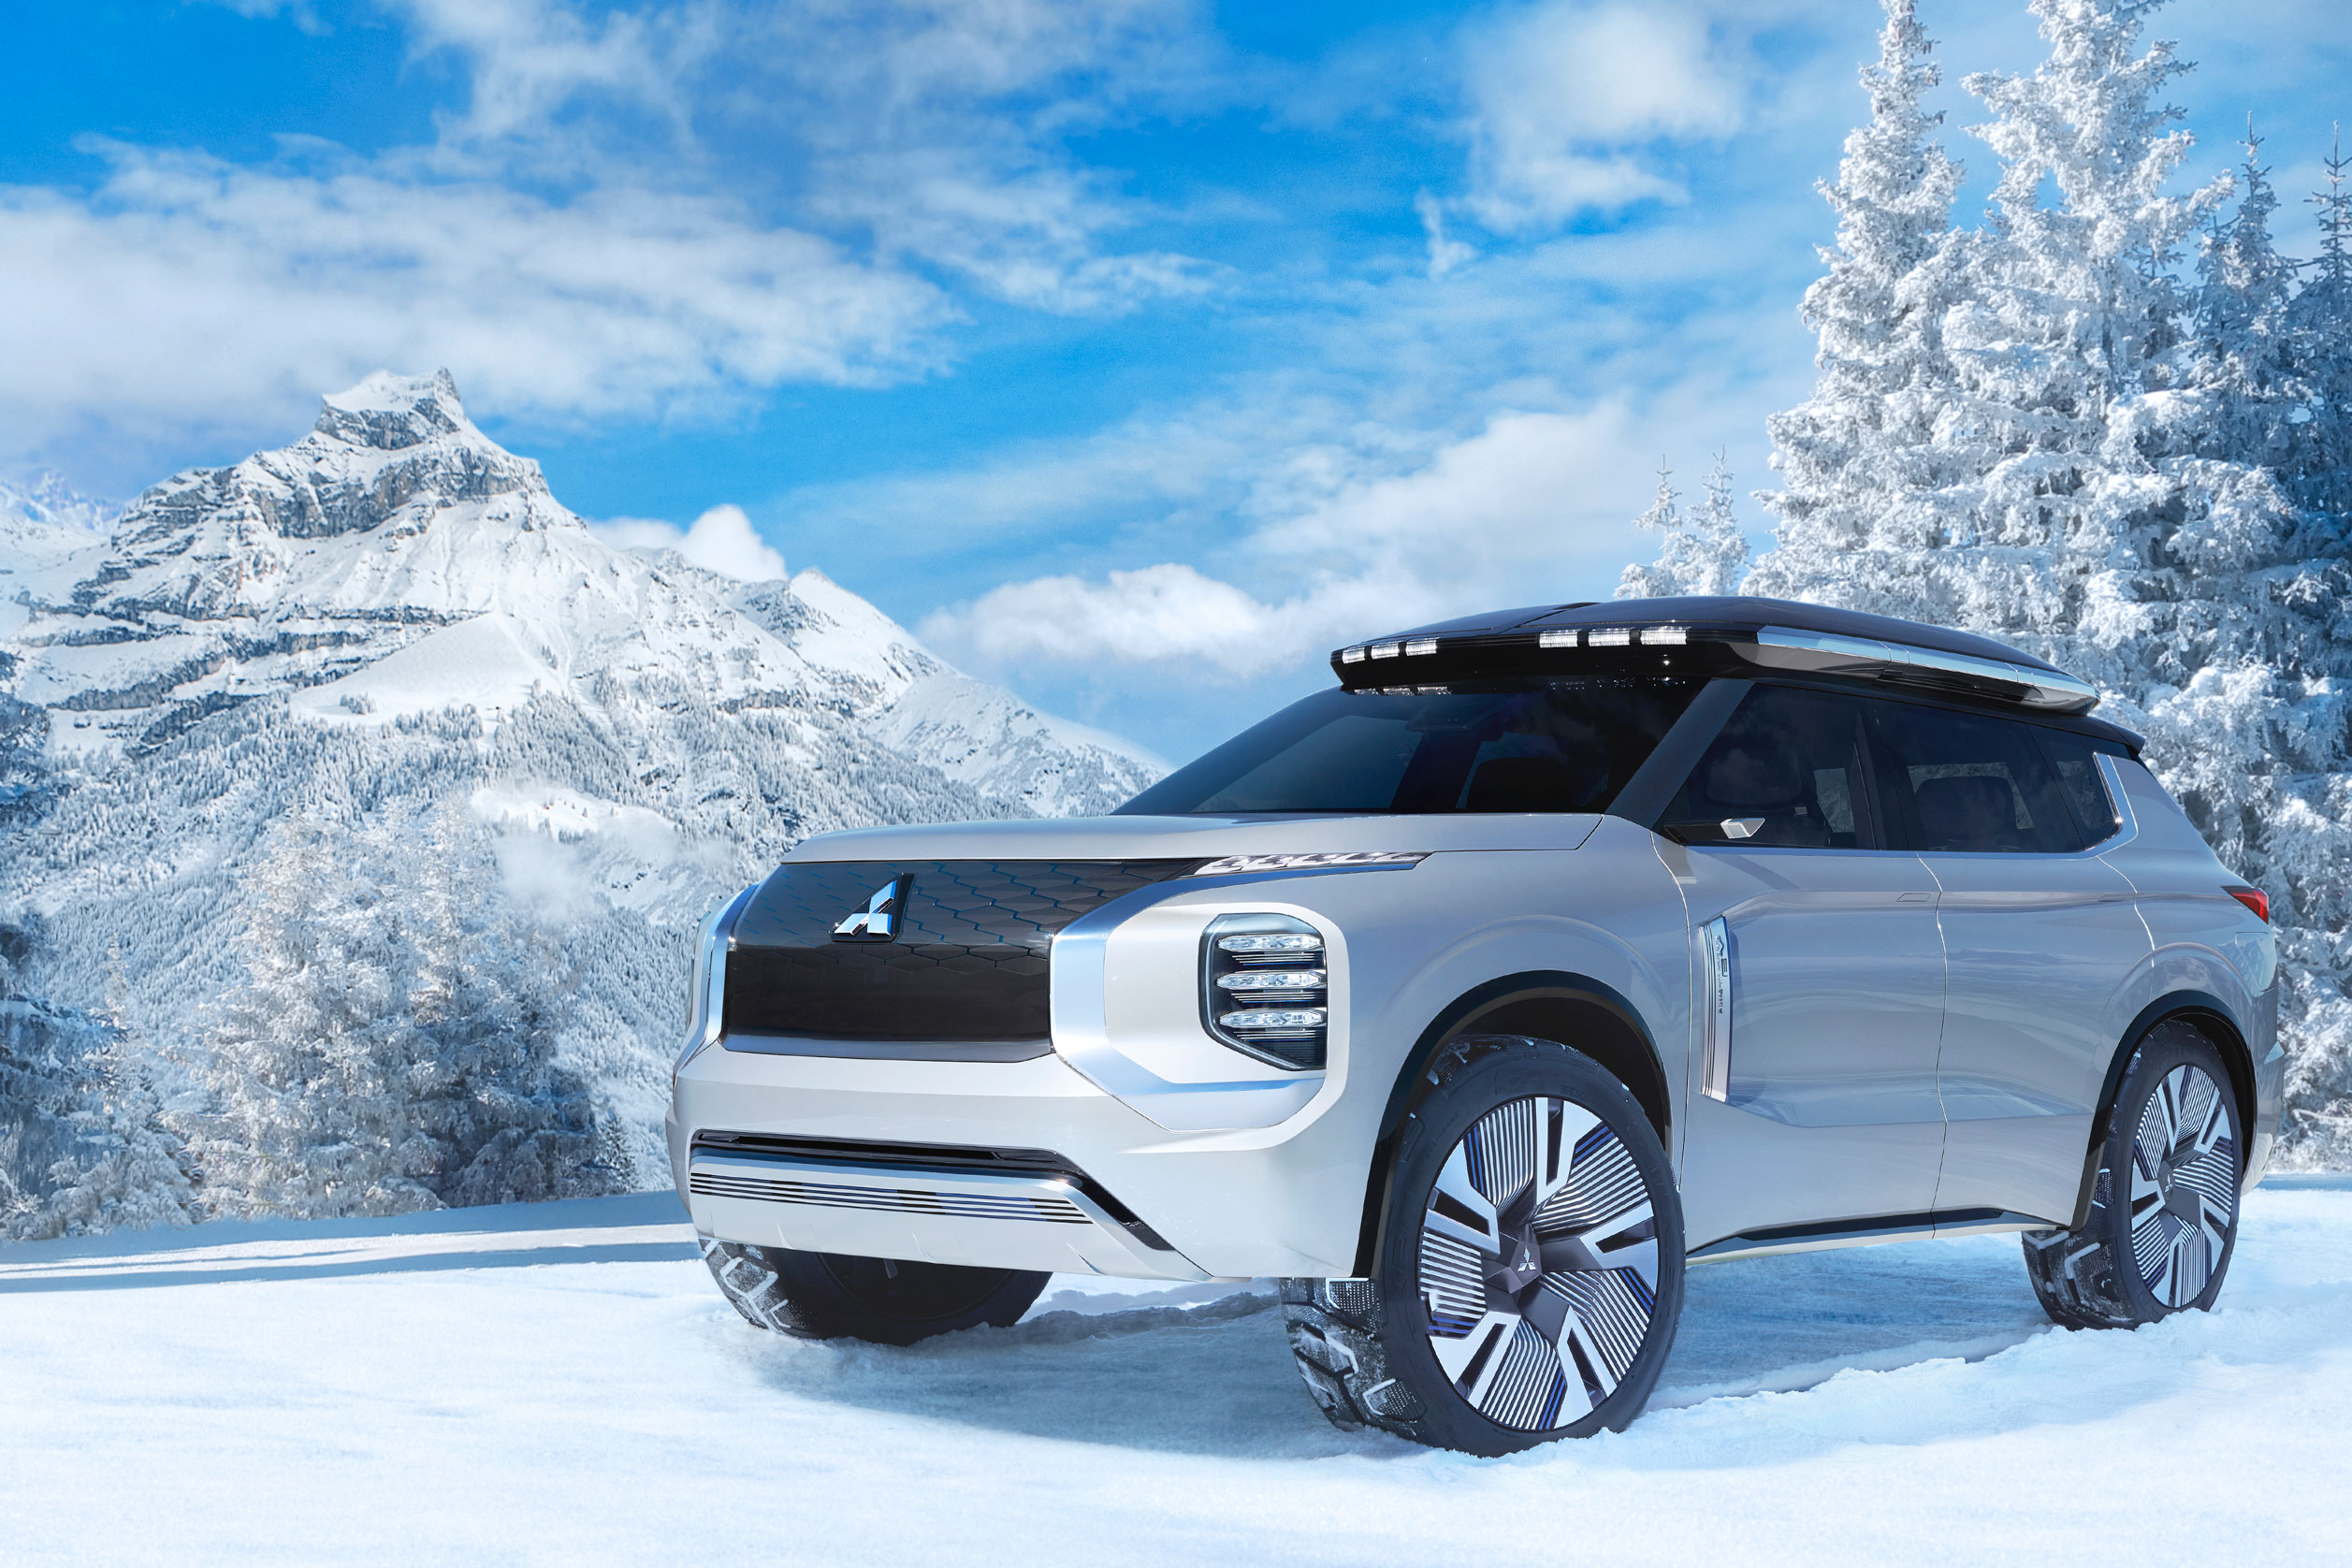 Mitsubishi Engleberg Tourer concept hybrid SUV in the mountains